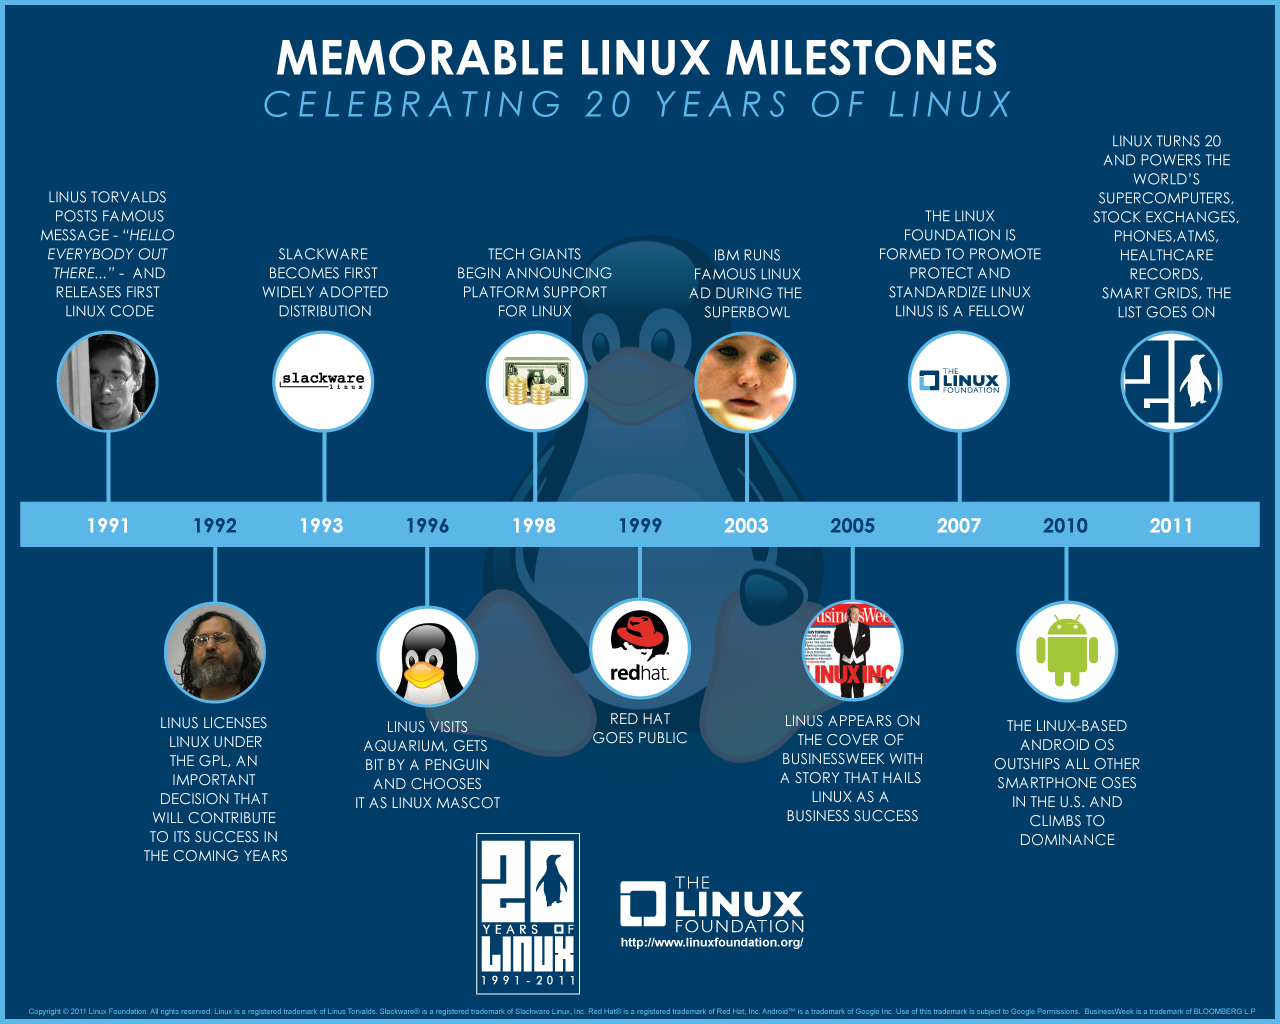 http://8.mshcdn.com/wp-content/uploads/2011/04/linux-infographic.png